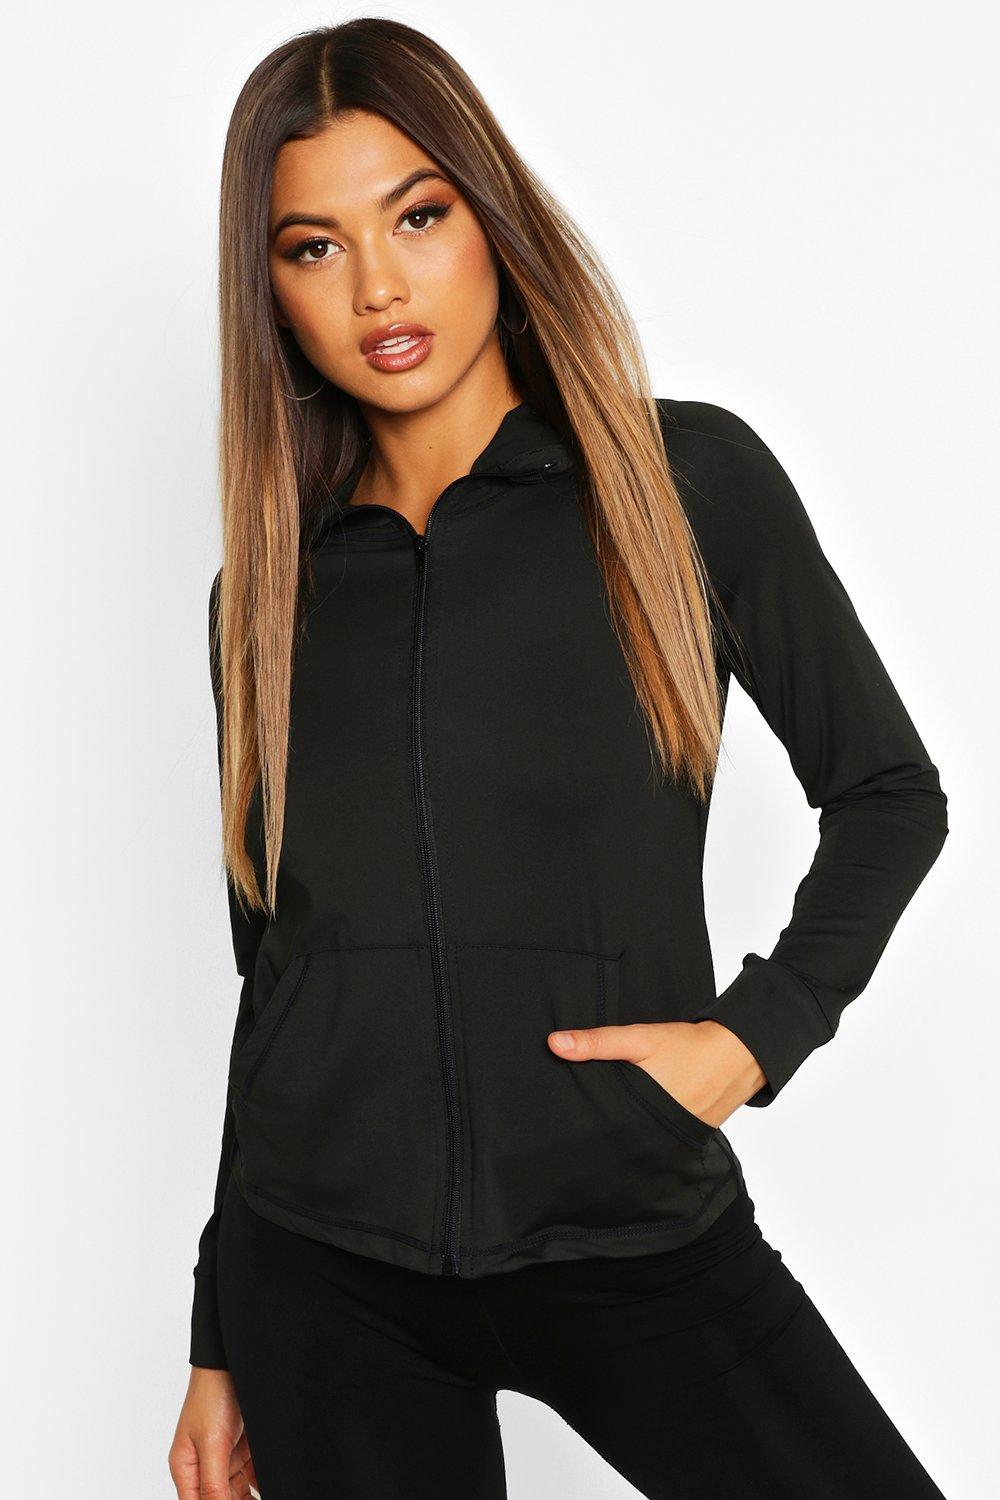 boohoo Womens Fit Long Sleeve Zip Up Hooded Gym Jacket - Black - 12, Black